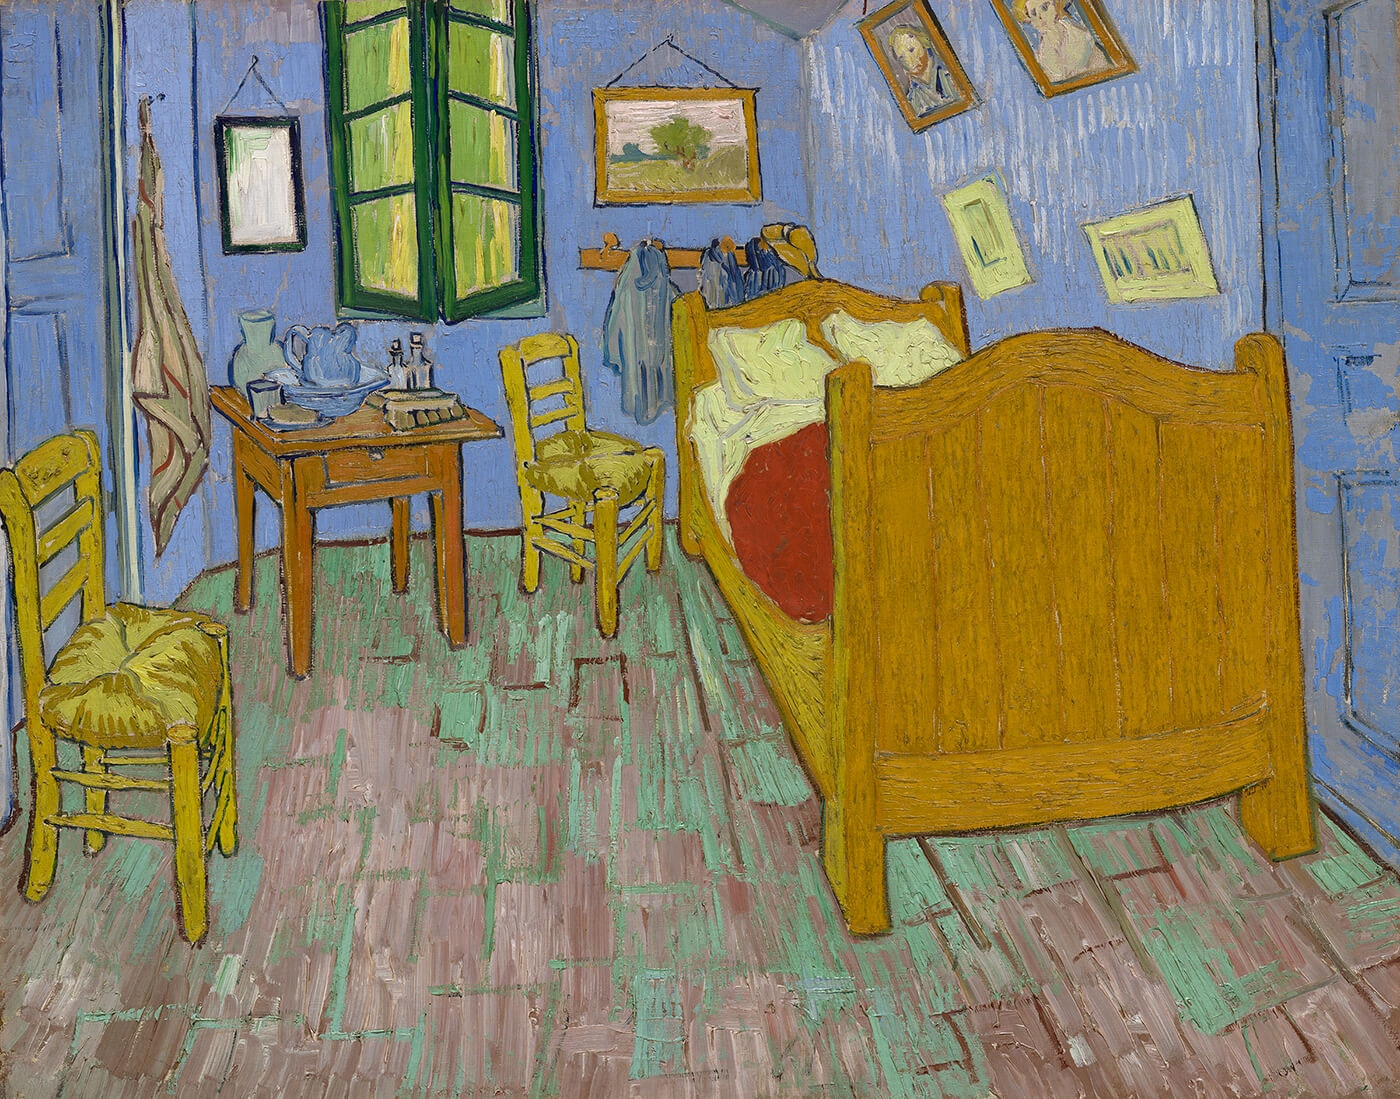 Van Gogh's The Bedroom 1889 Art Institute of Chicago